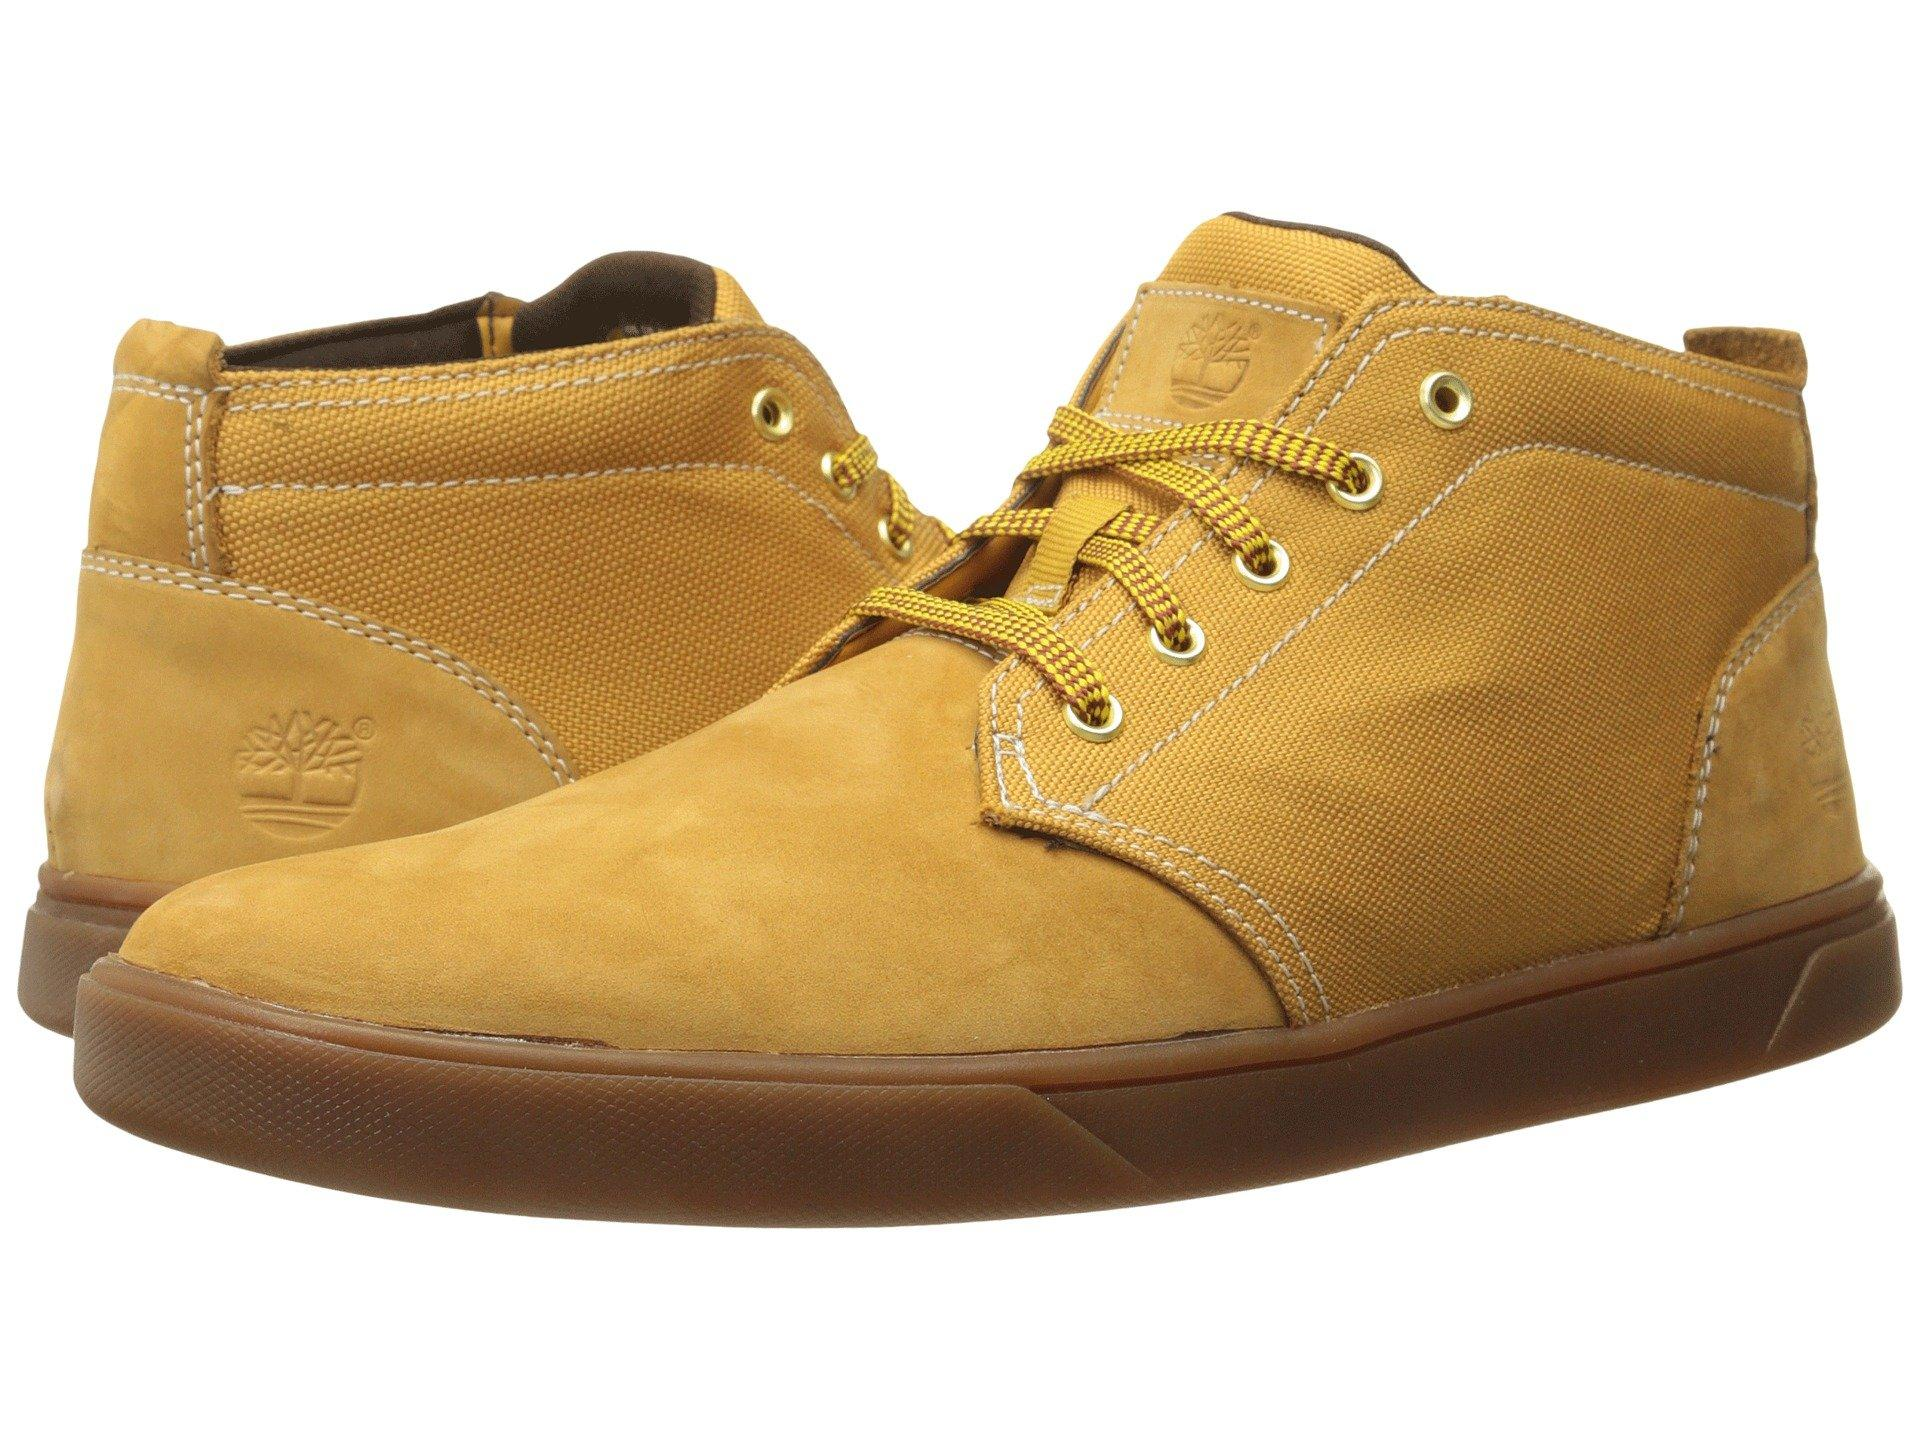 b5ac12f05e3 Groveton Leather And Fabric Chukka, Wheat Nubuck/Canvas 1